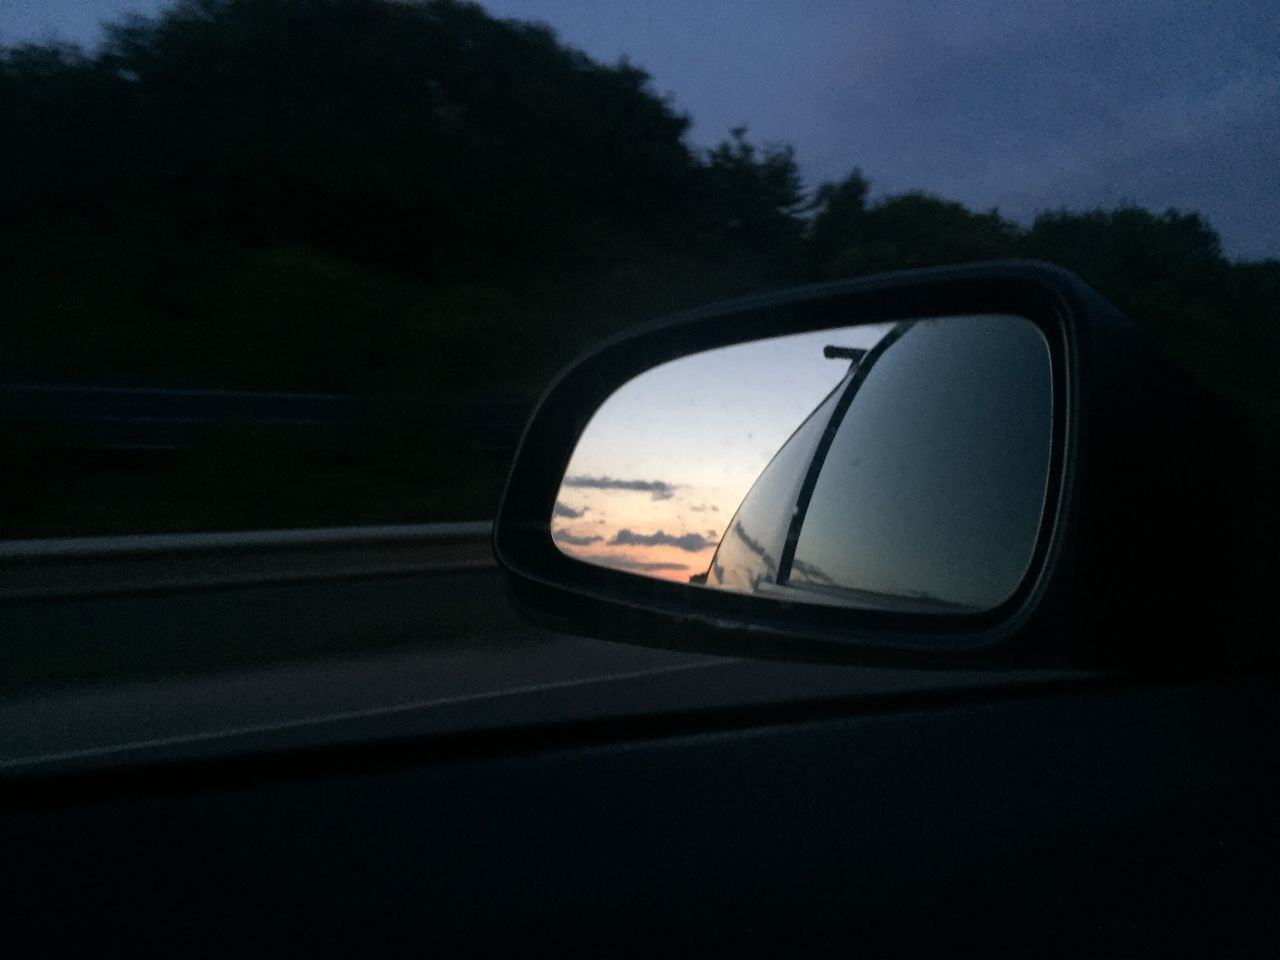 REFLECTION OF CAR ON SIDE-VIEW MIRROR OF VEHICLE